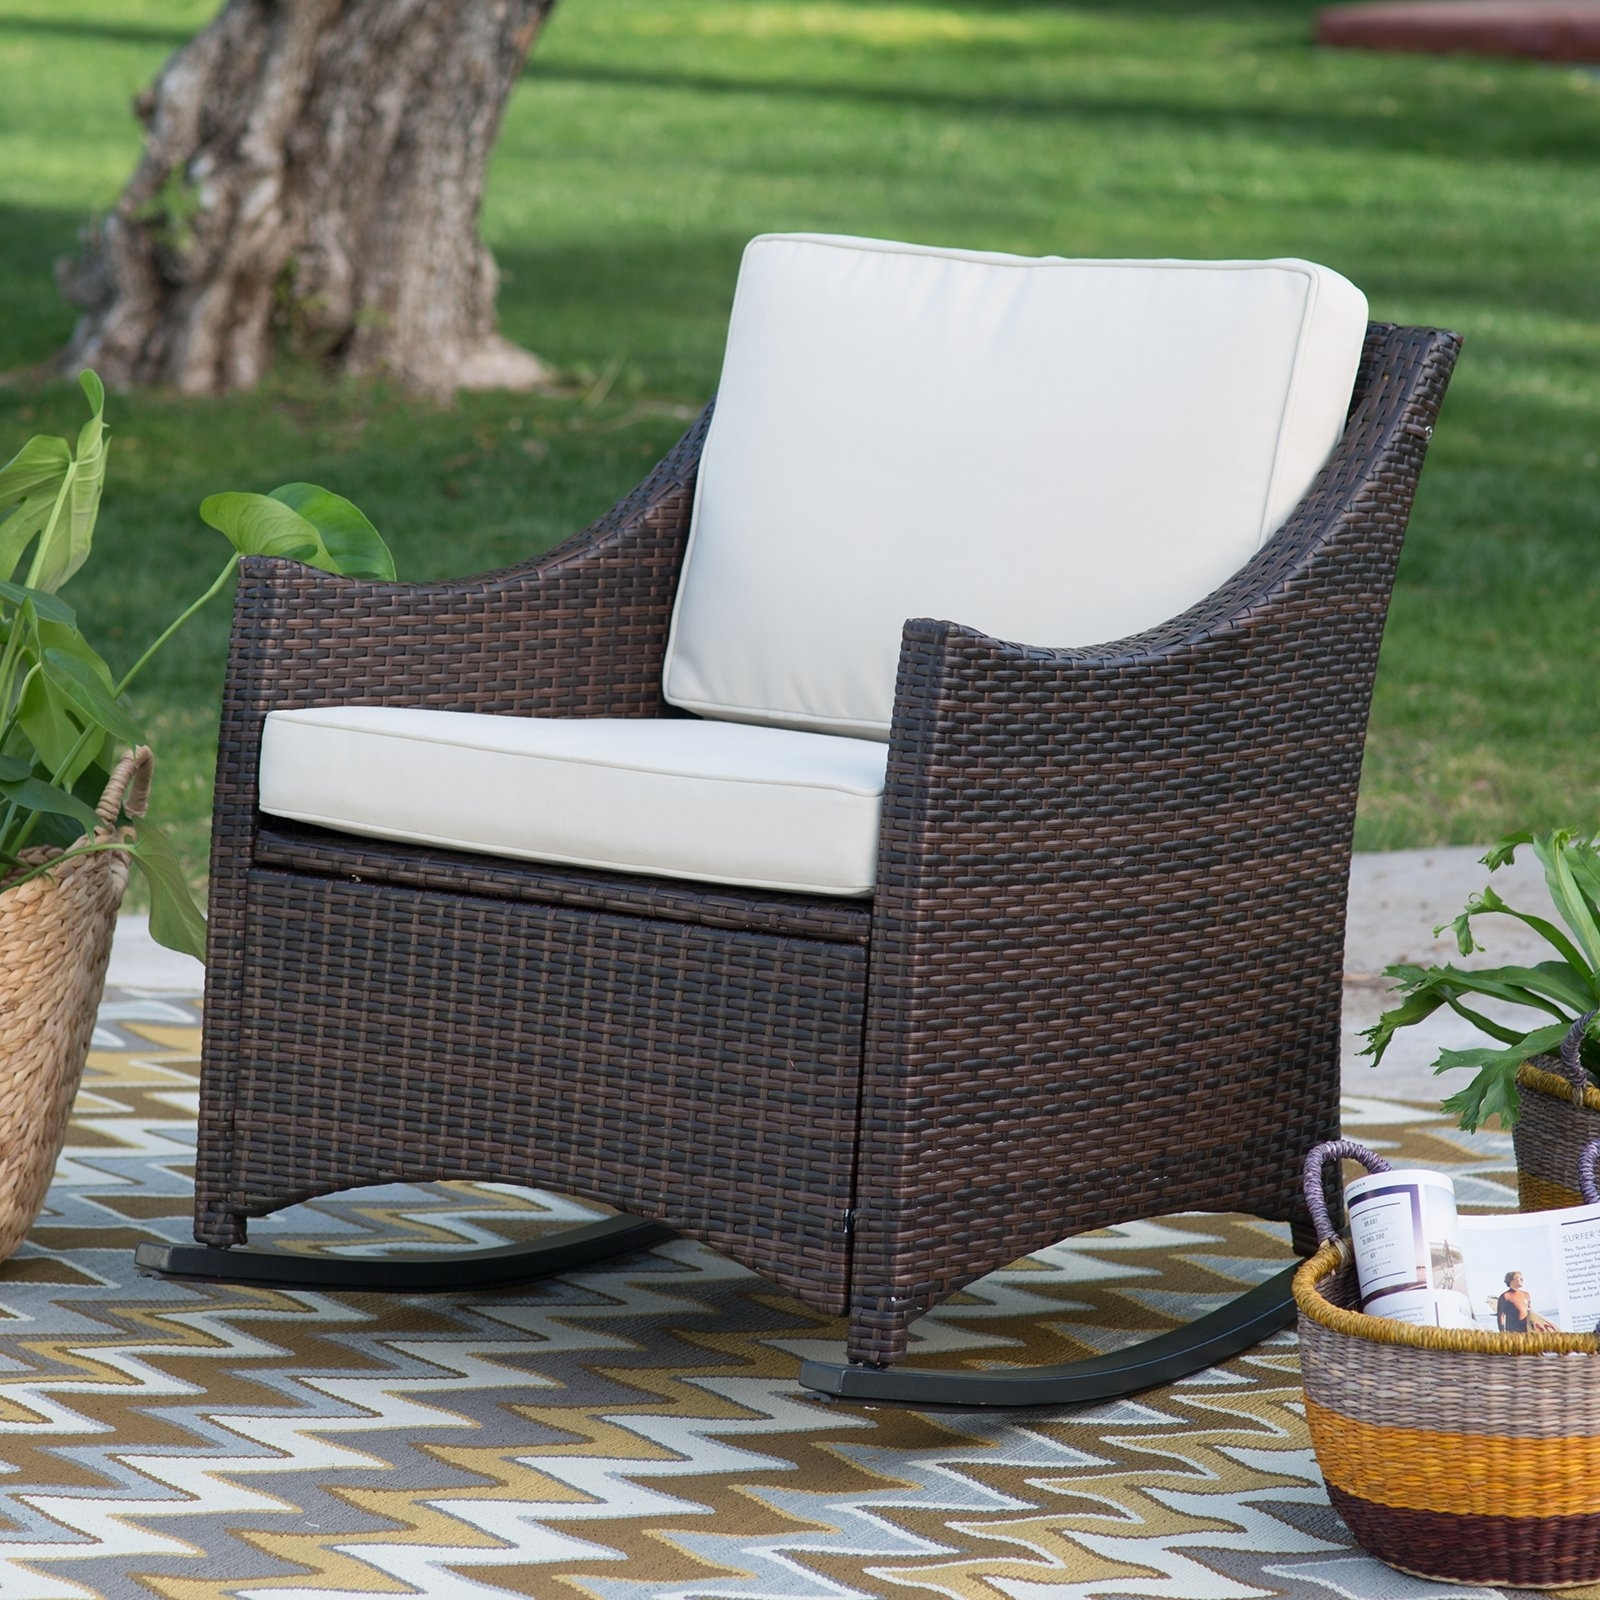 Chair | Outdoor Rocking Chairs For Sale Traditional Rocking Chair Throughout Outdoor Wicker Rocking Chairs (View 2 of 15)